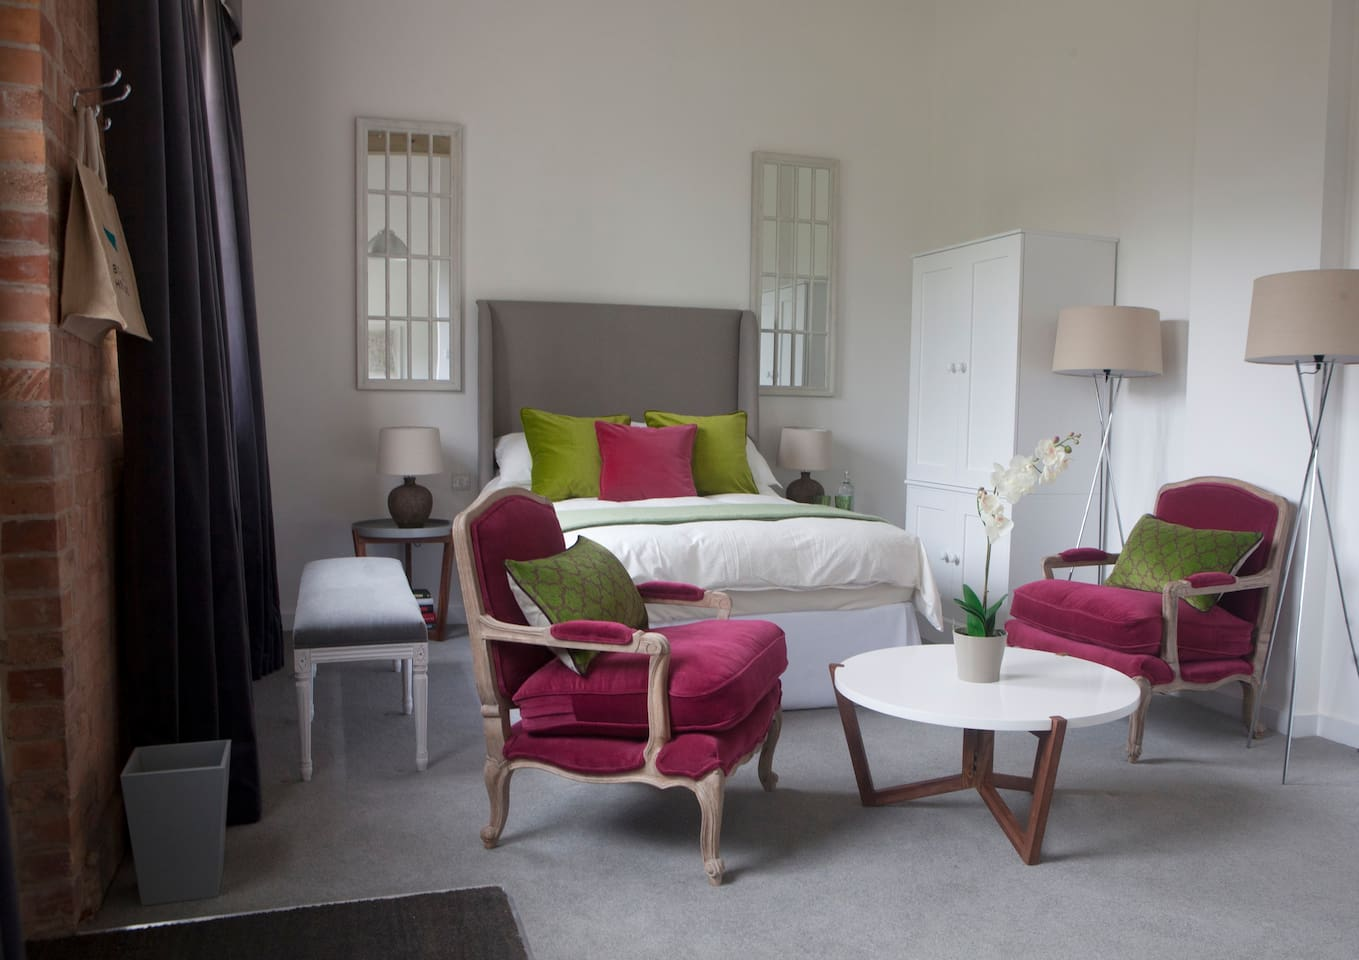 Rotheram has a comfortable double bed and high ceilings.